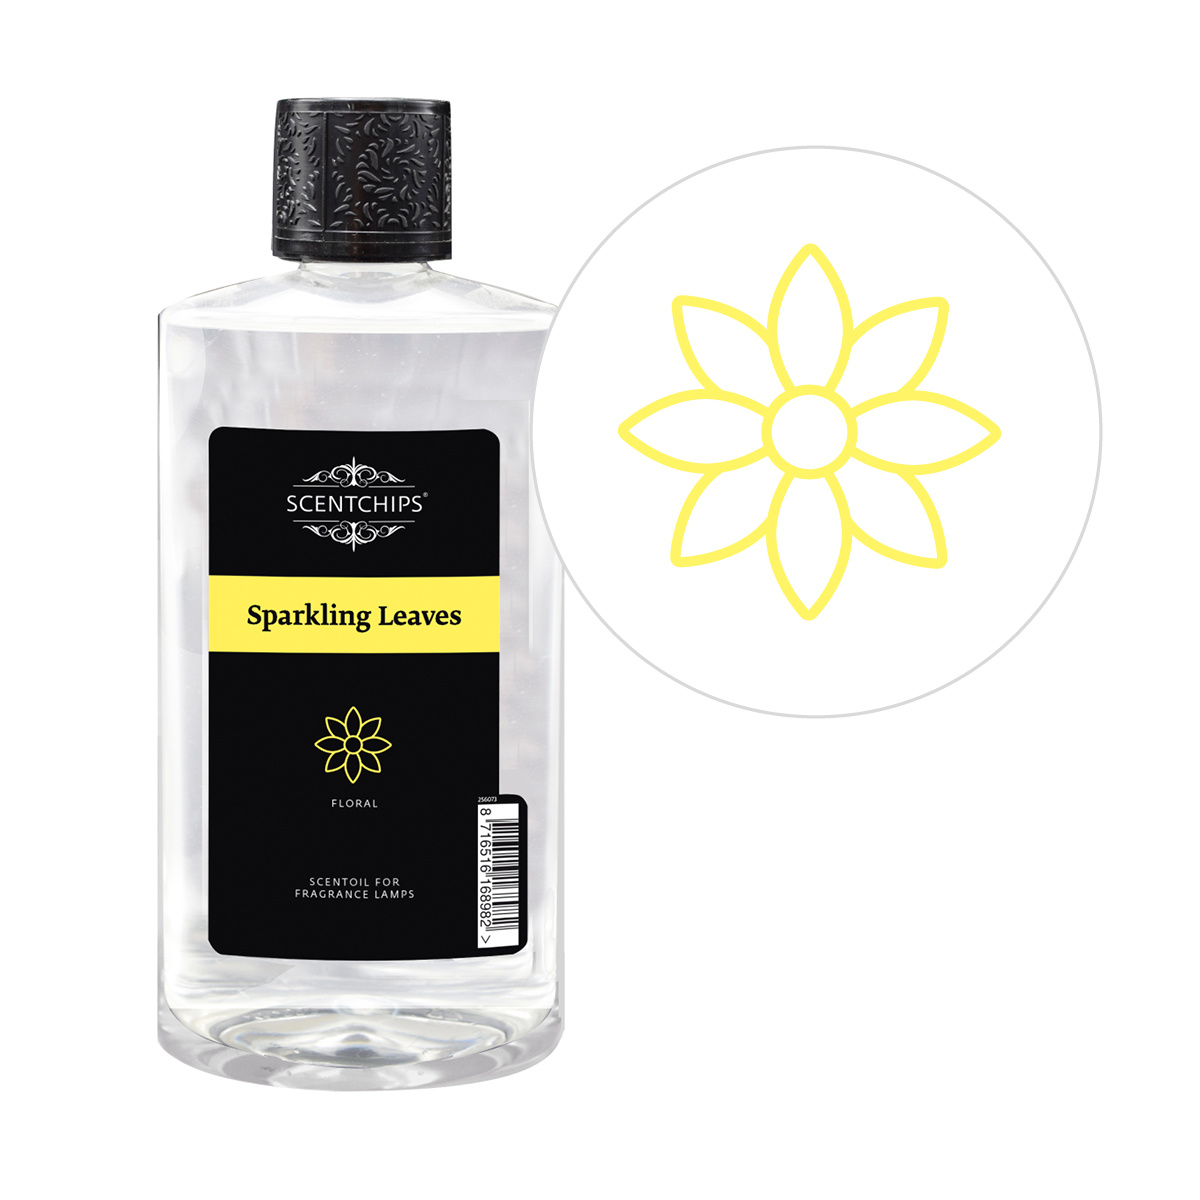 Sparkling Leaves fragrance oil ScentOil